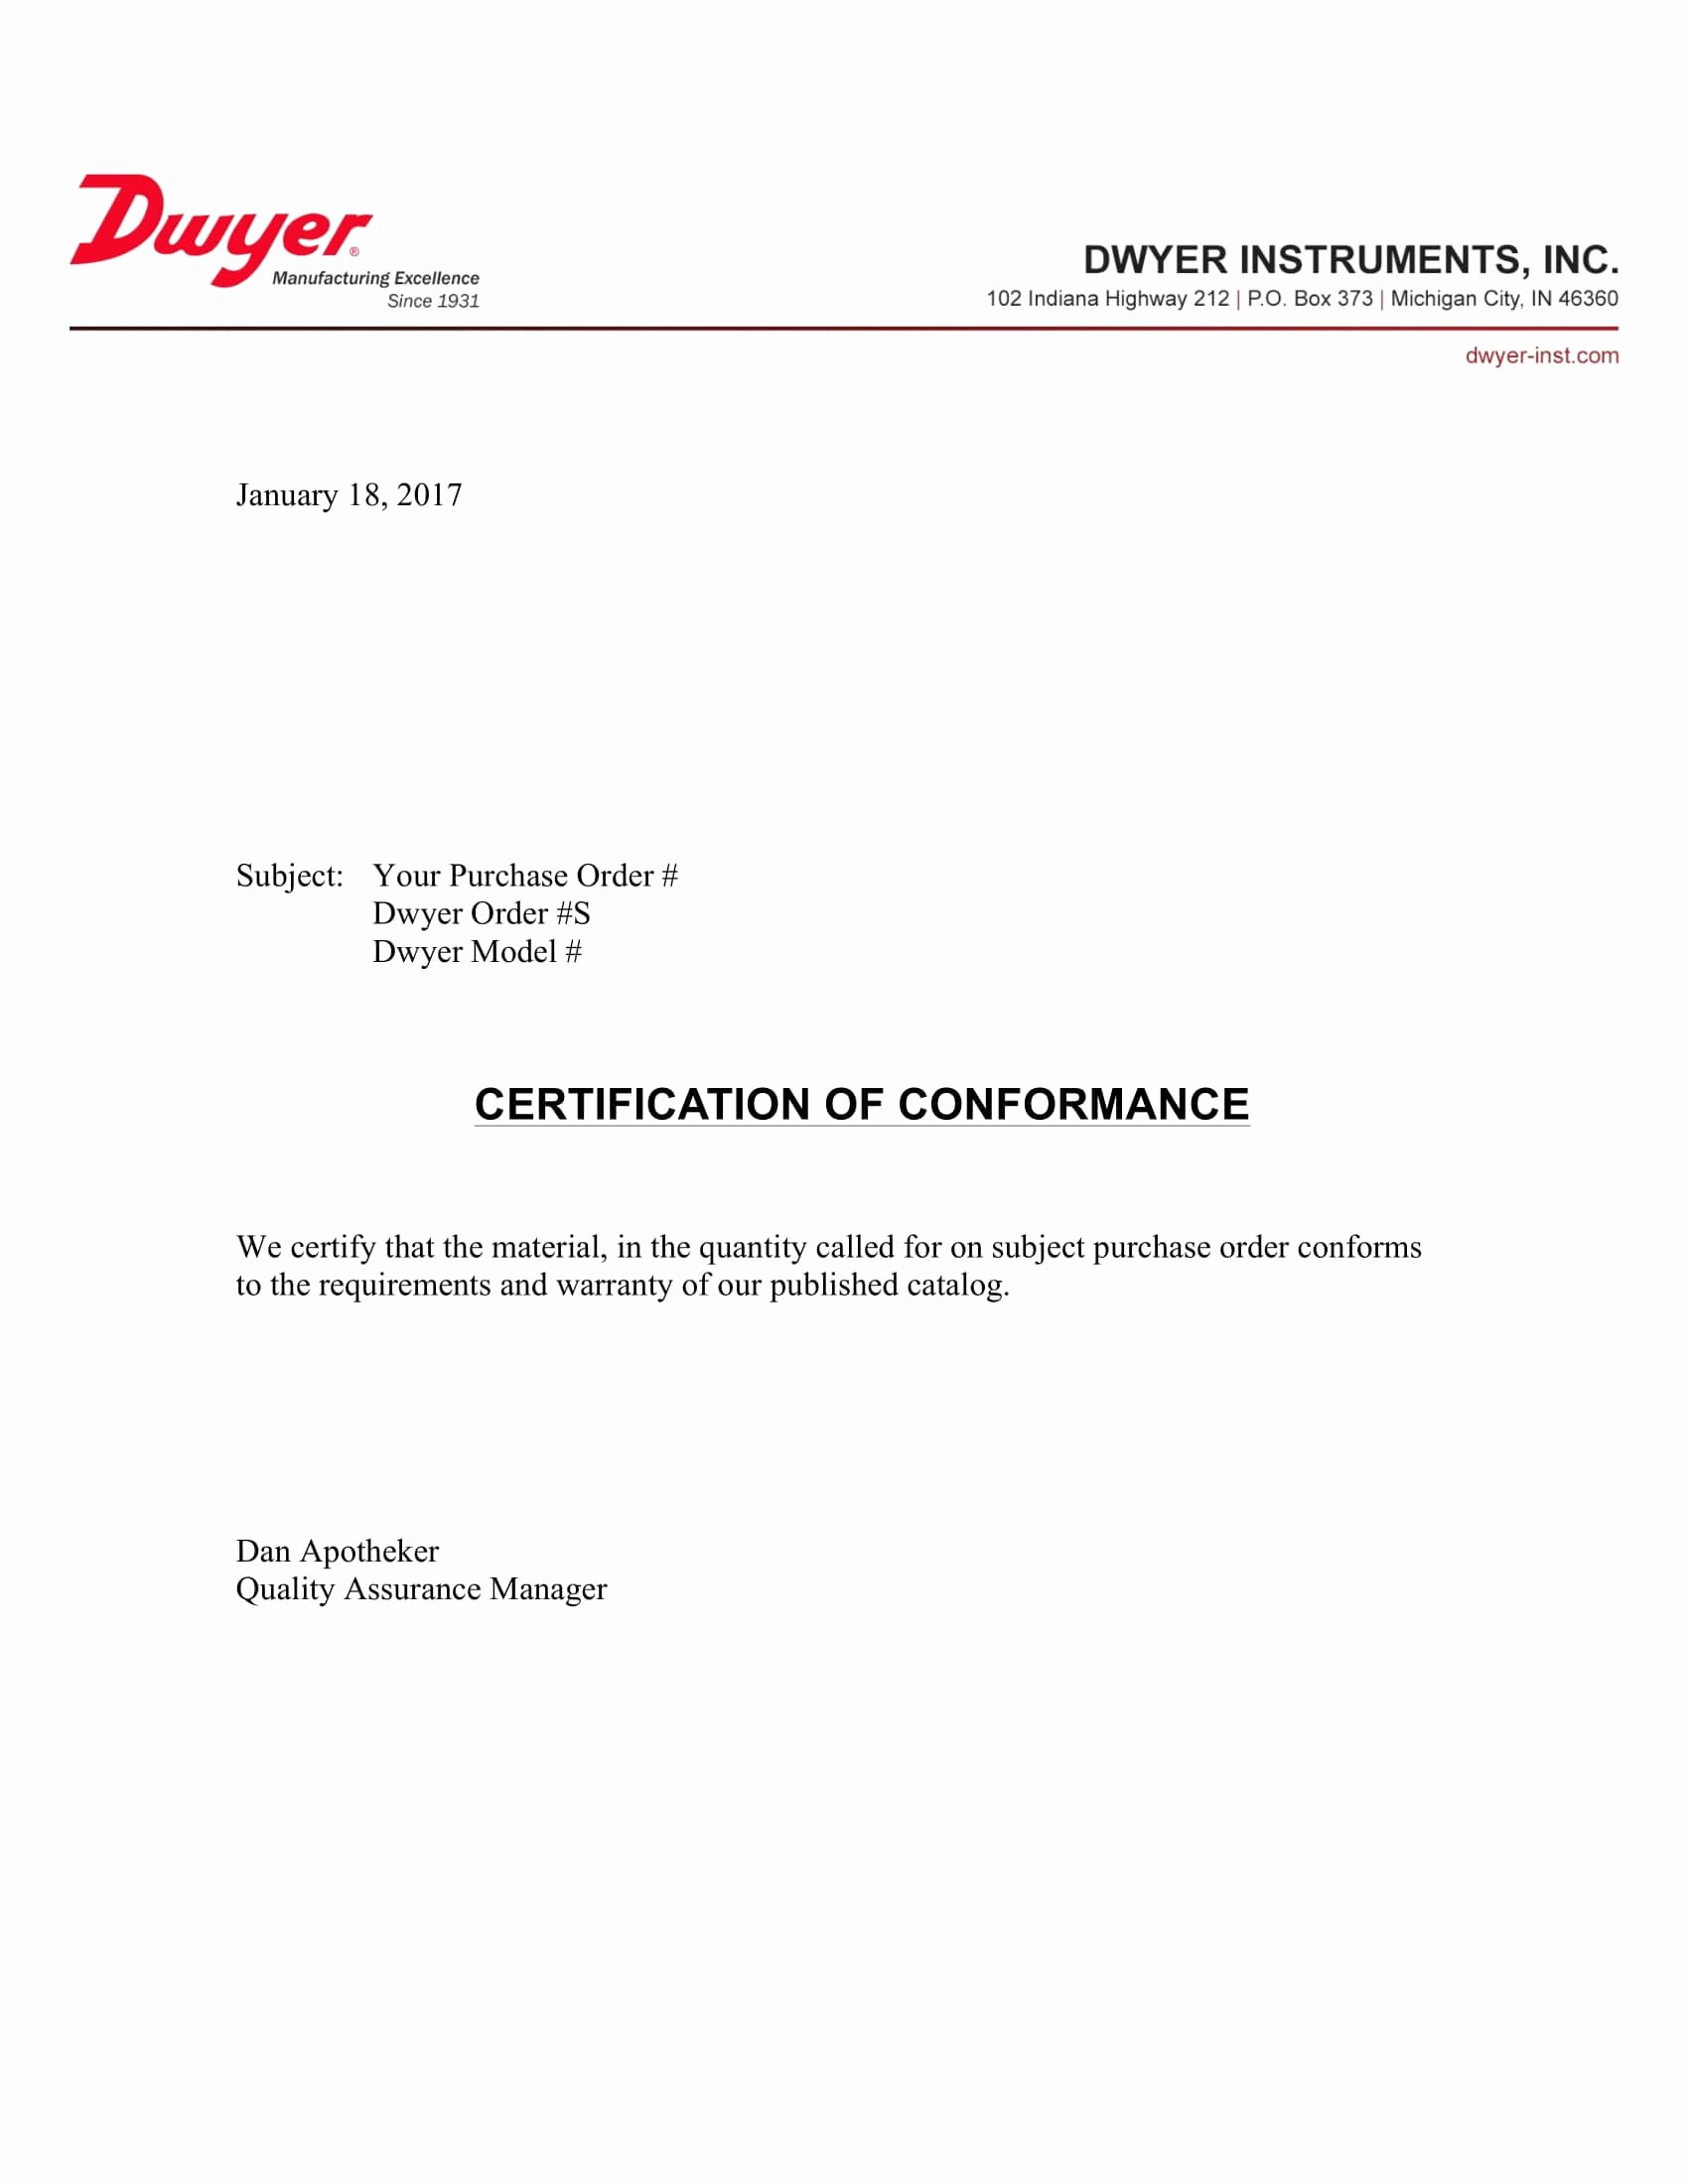 Certificate Of Conformance Template Word Awesome 16 Certificate Of Conformance Example Pdf Word Ai